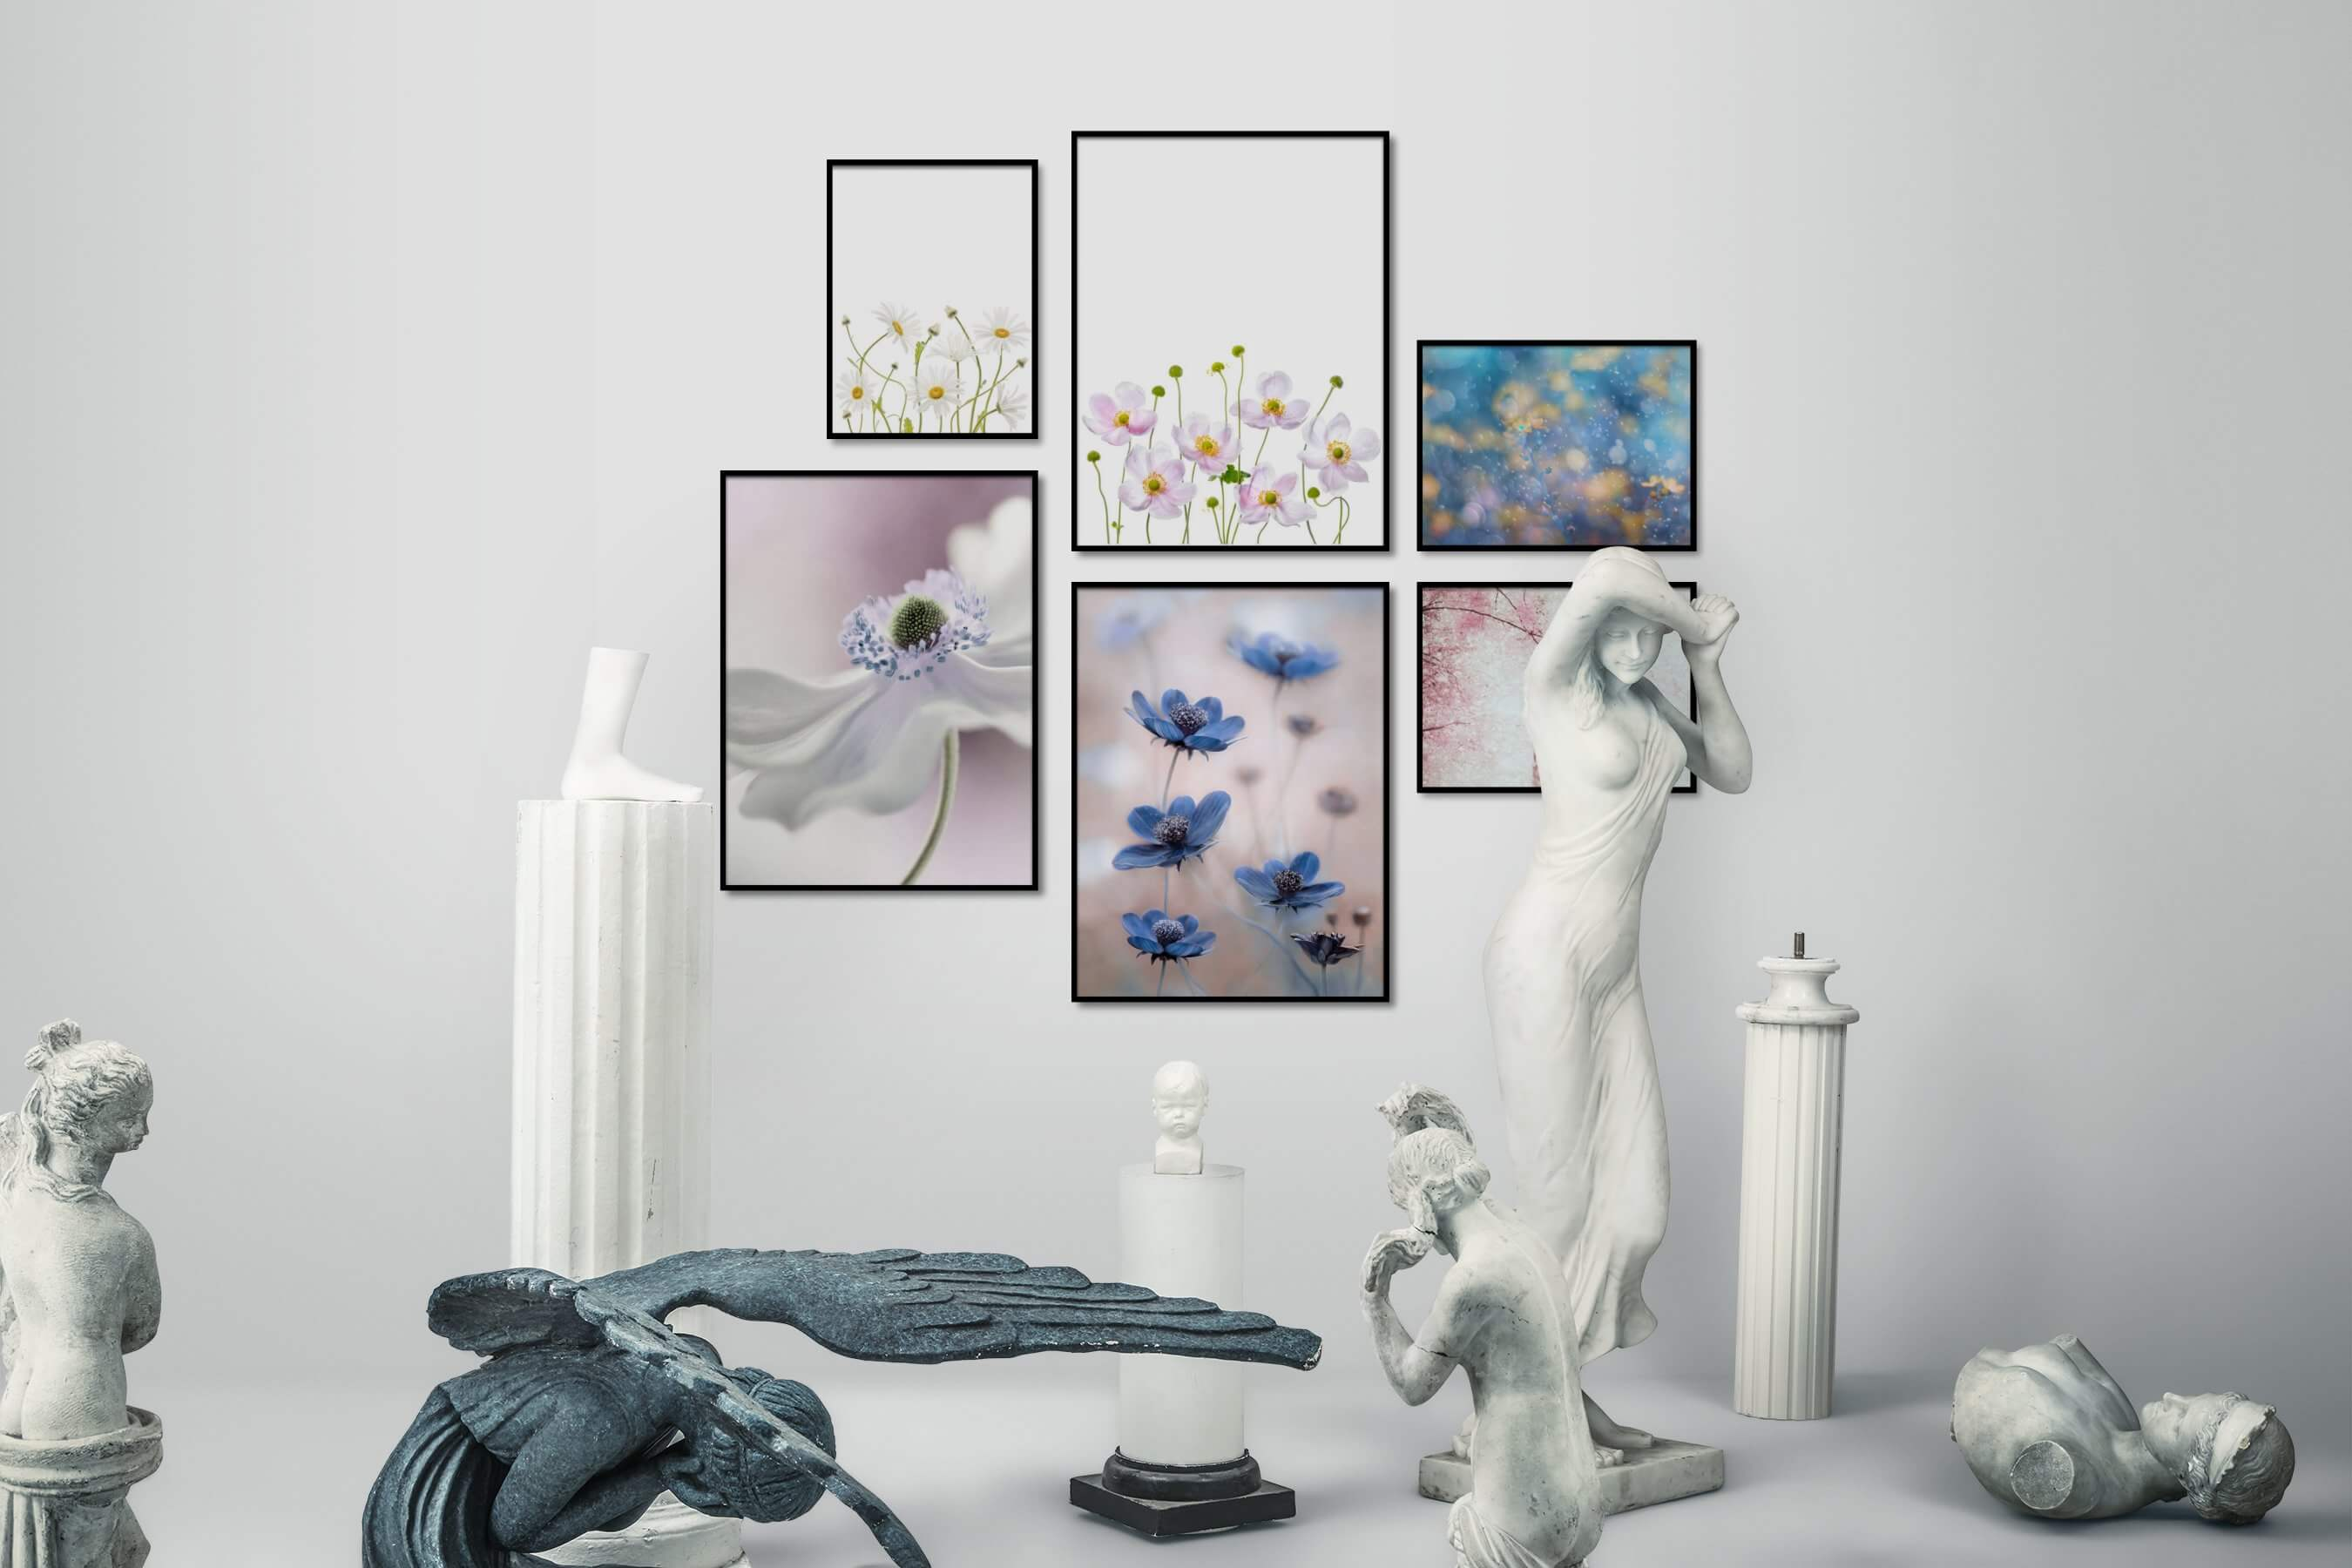 Gallery wall idea with six framed pictures arranged on a wall depicting Bright Tones, For the Minimalist, Flowers & Plants, and Nature